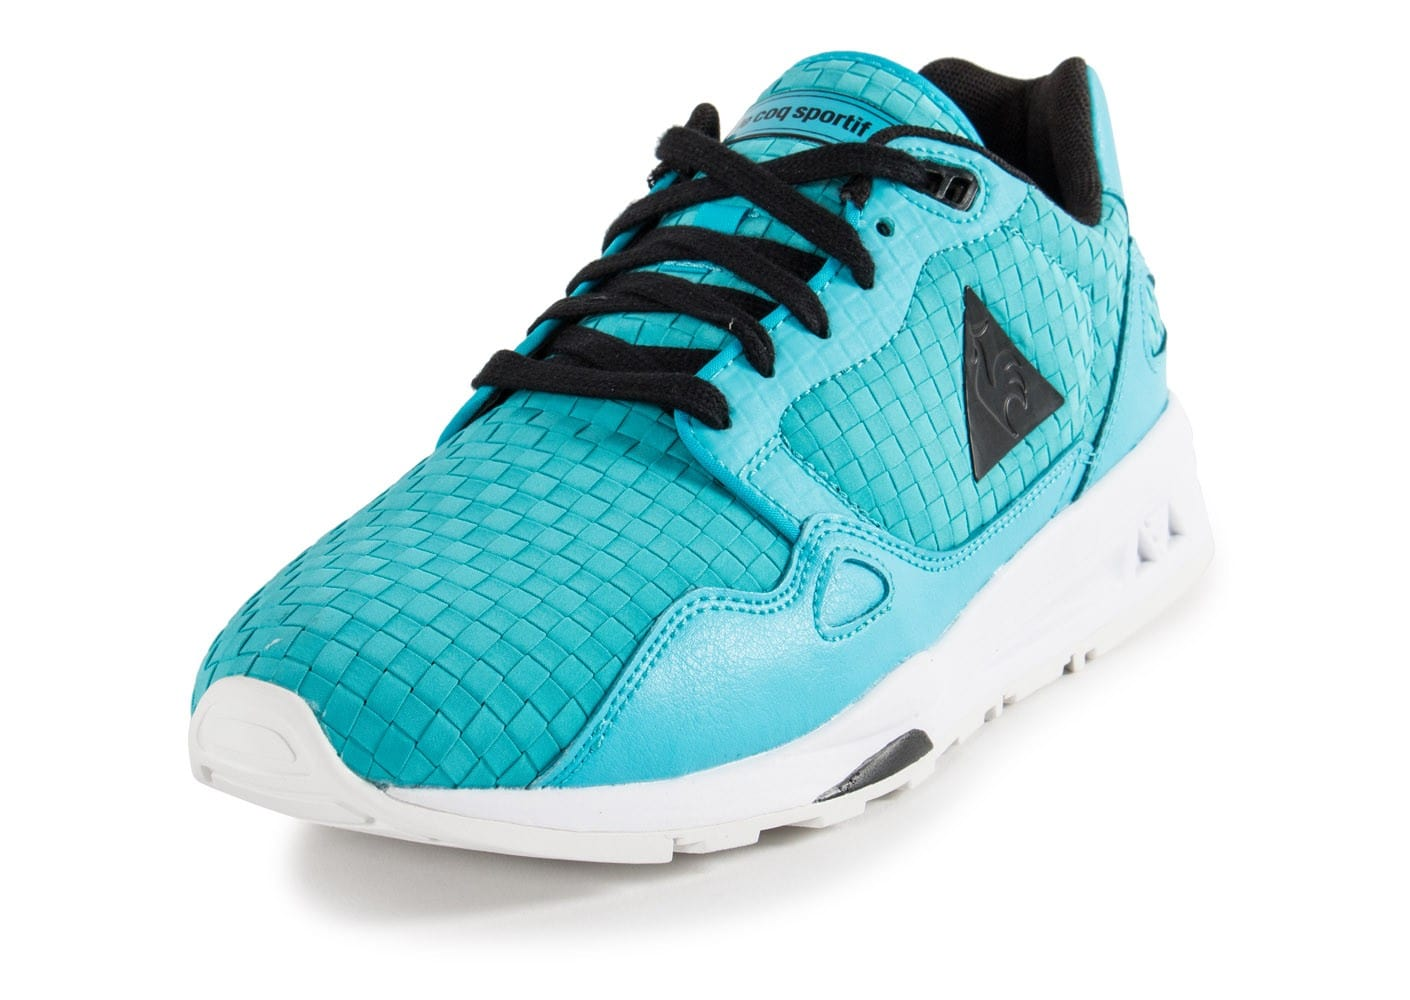 Coq Chaussures Baskets Woven R900 Le Homme Turquoise Lcs Sportif ZqcdC